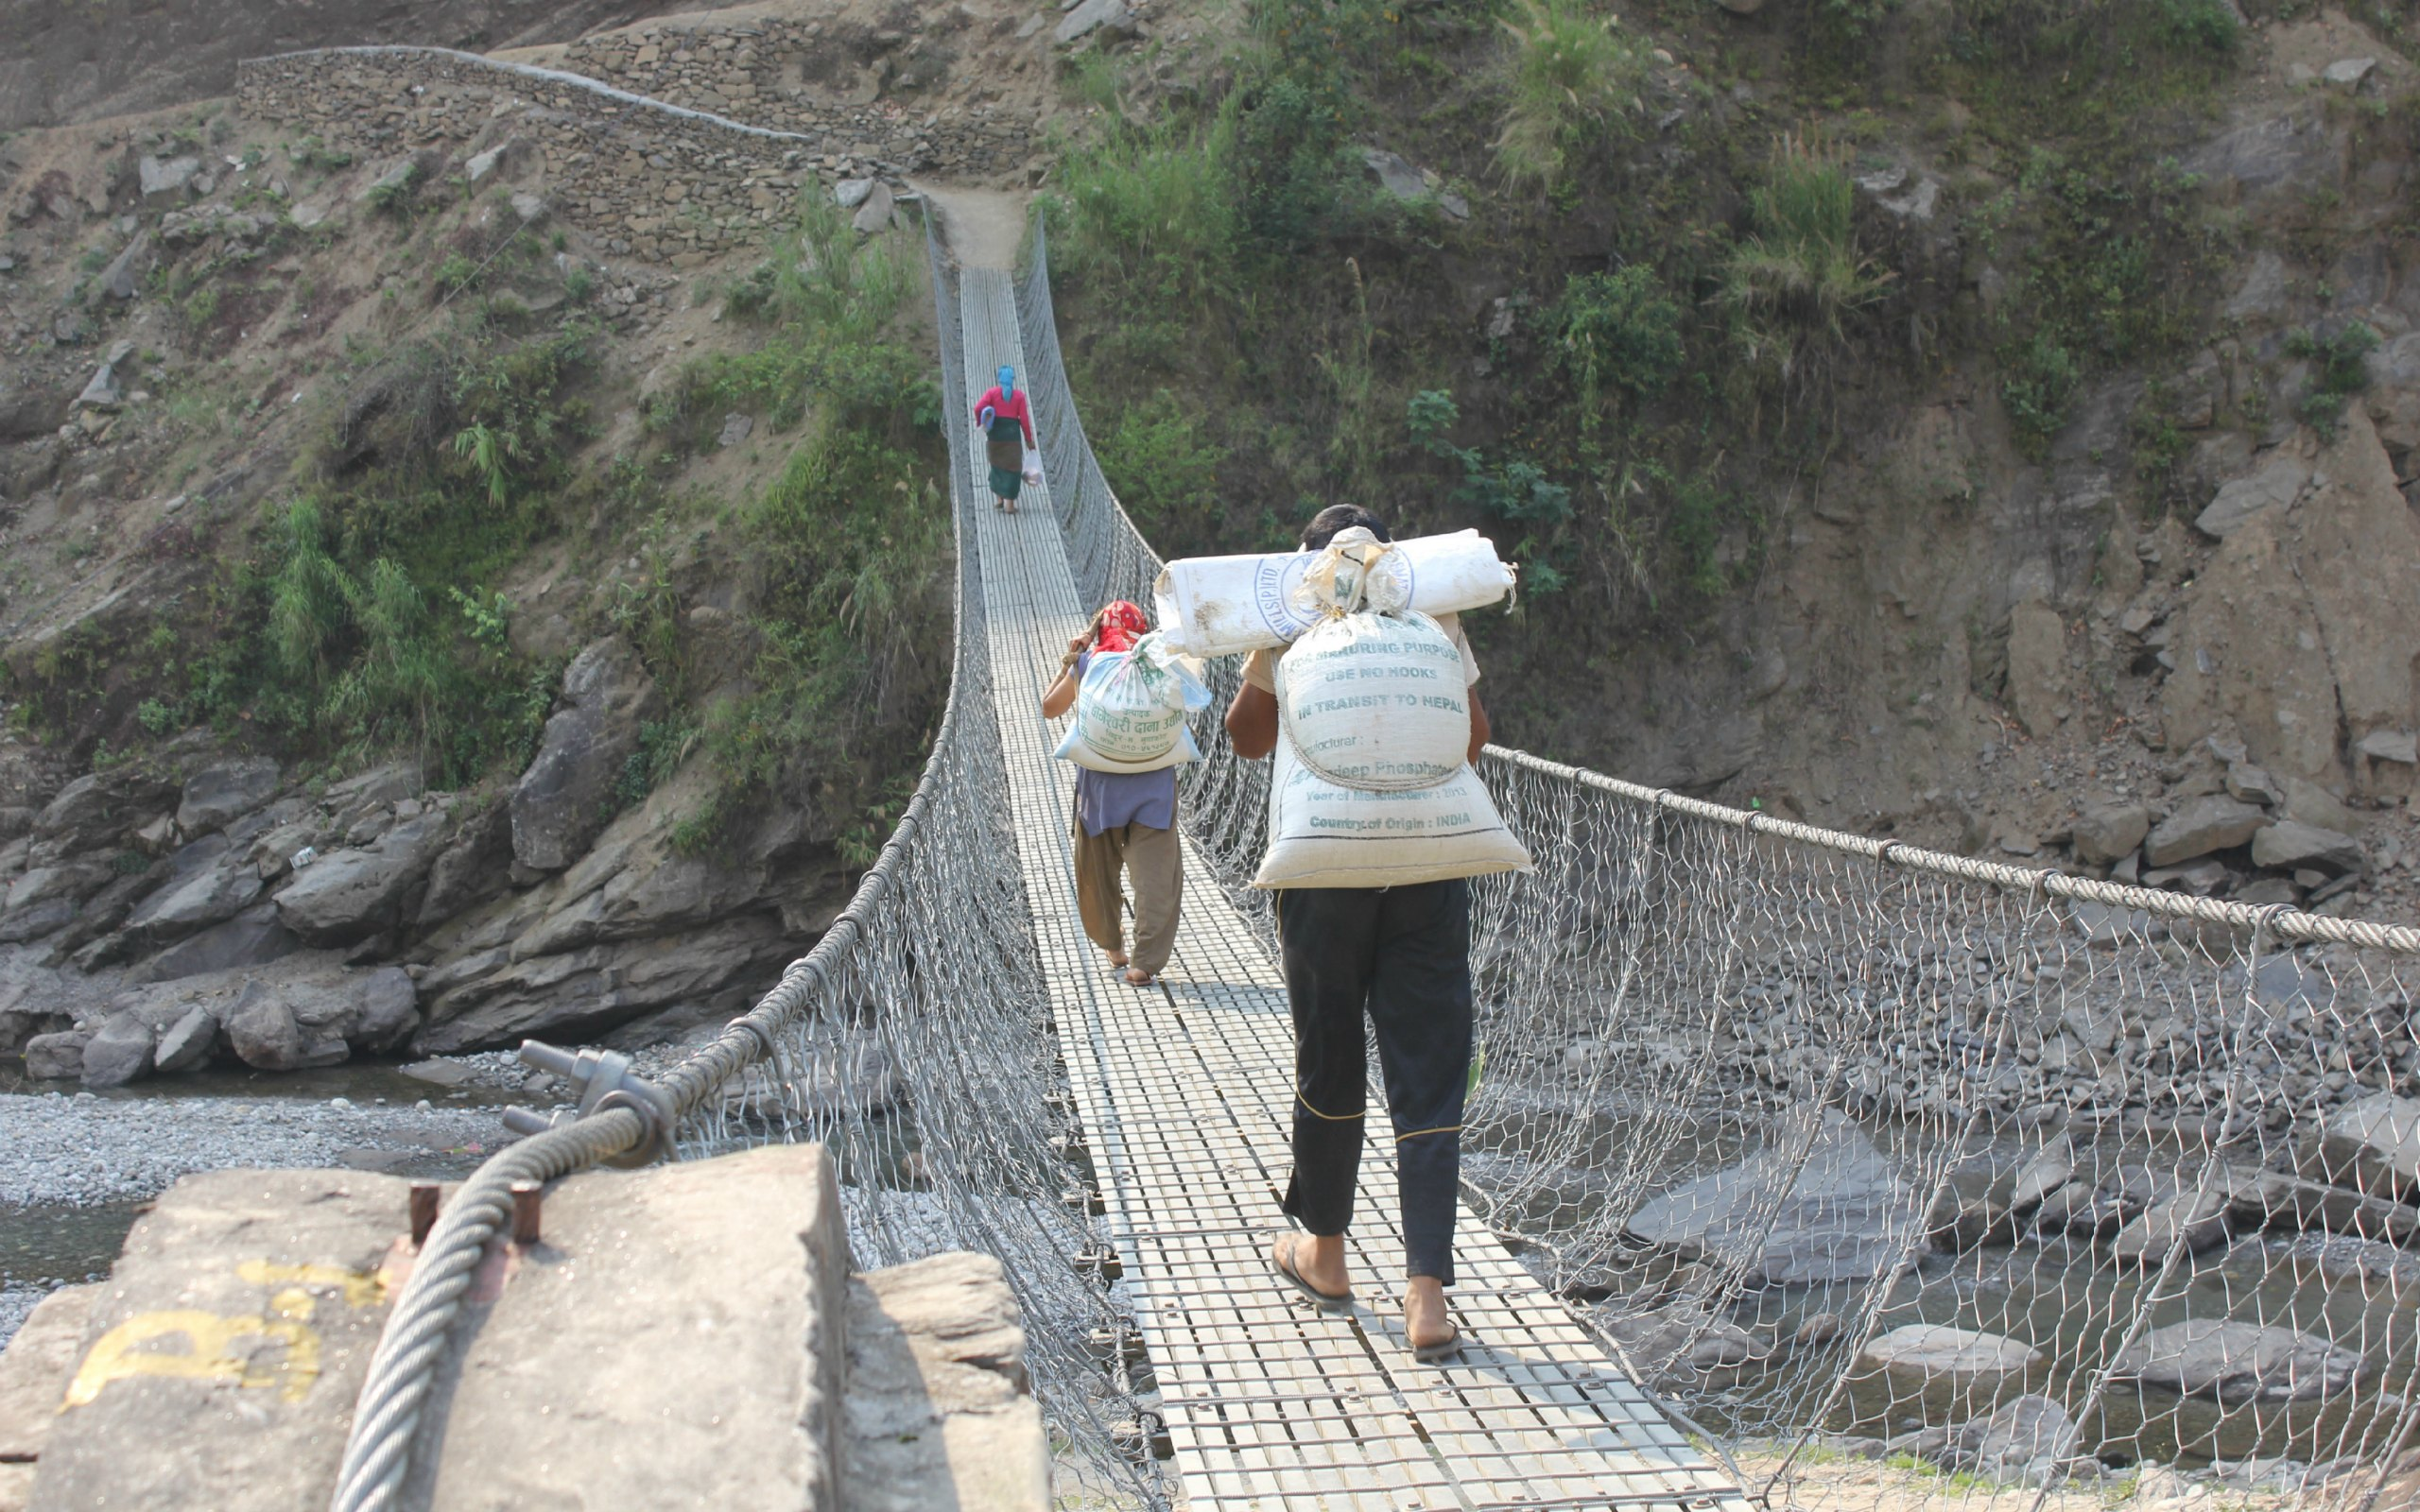 People affected by the earthquake in Nepal cross a suspension bridge carrying items from Oxfam's food distribution in Saatbise, Nuwakot. About 450 households affected by the earthquake received items on one day.